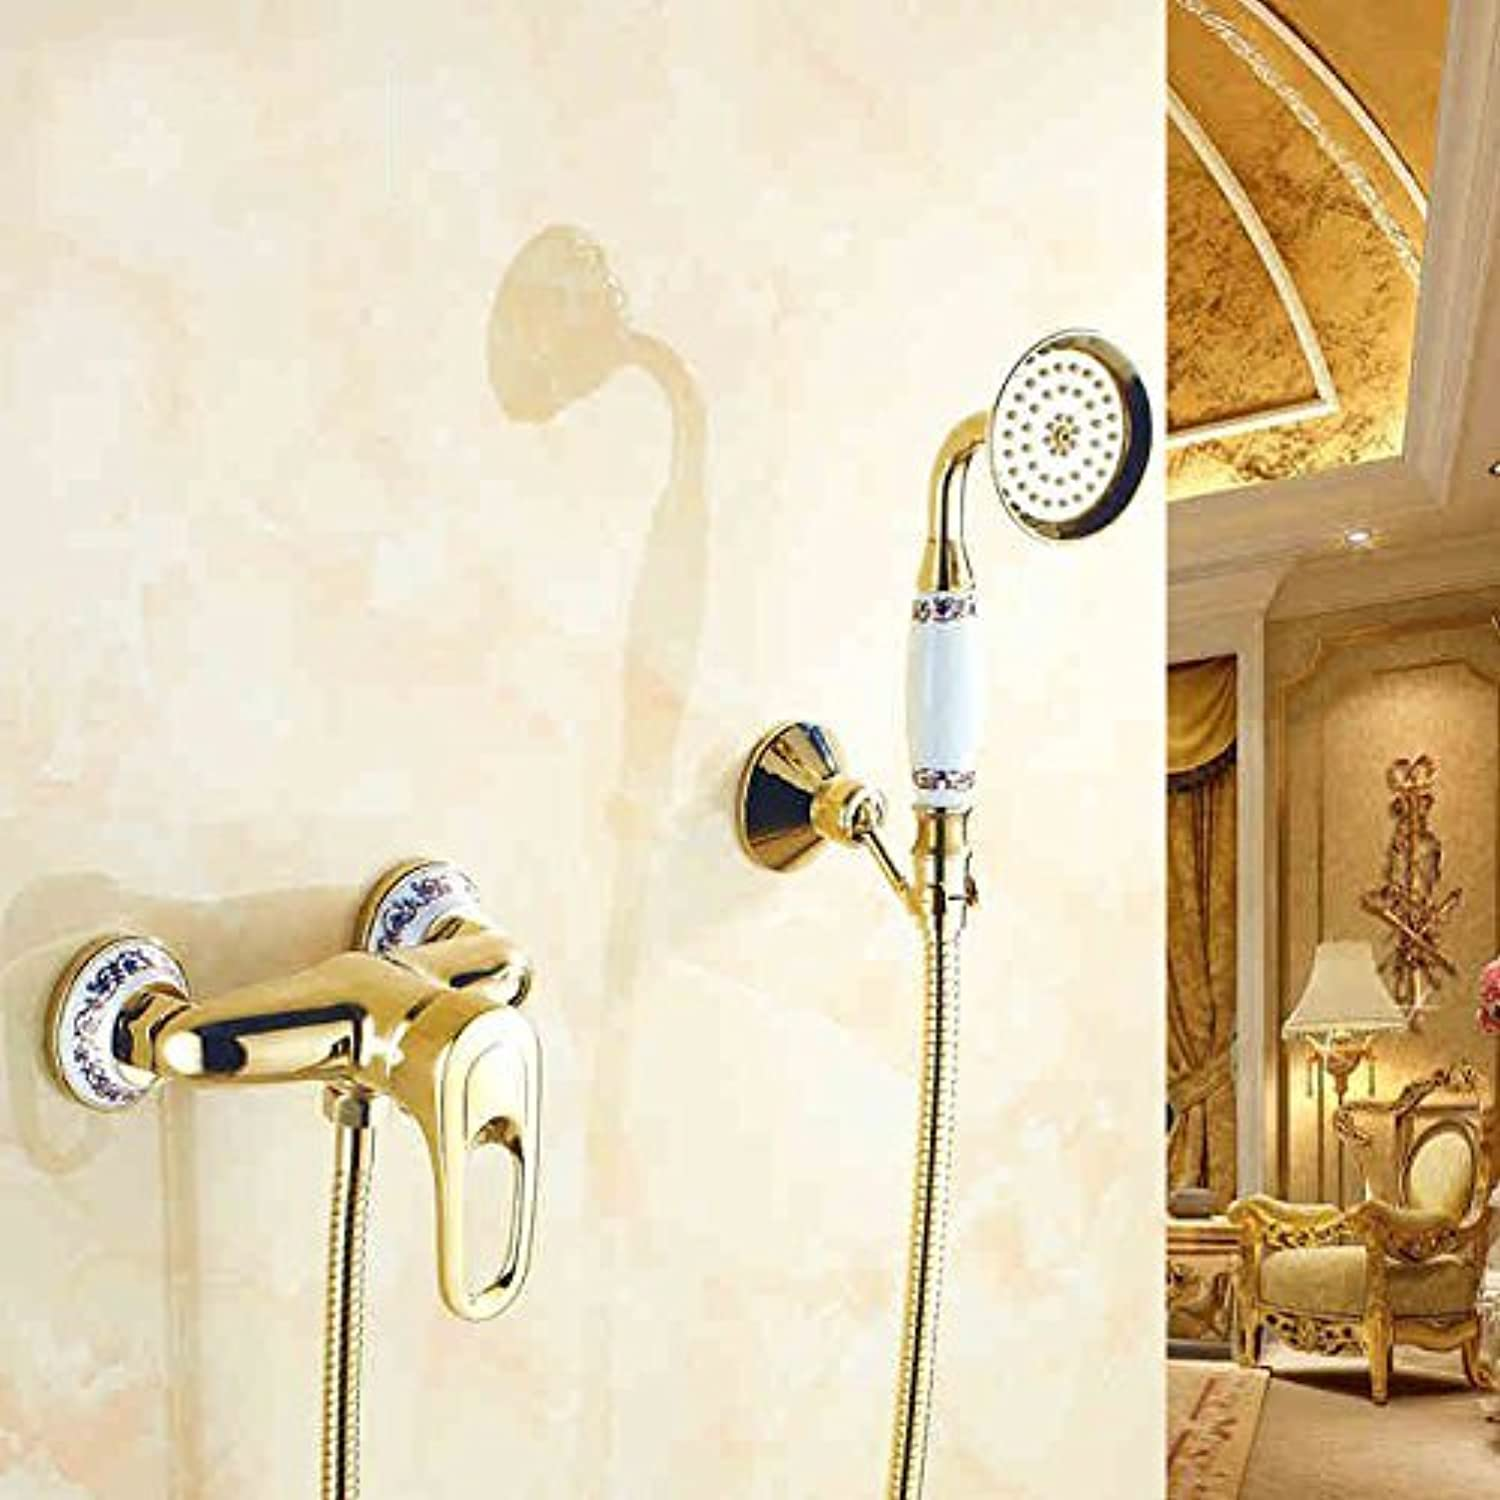 Oudan All copper hose, bluee and white porcelain decorative shower